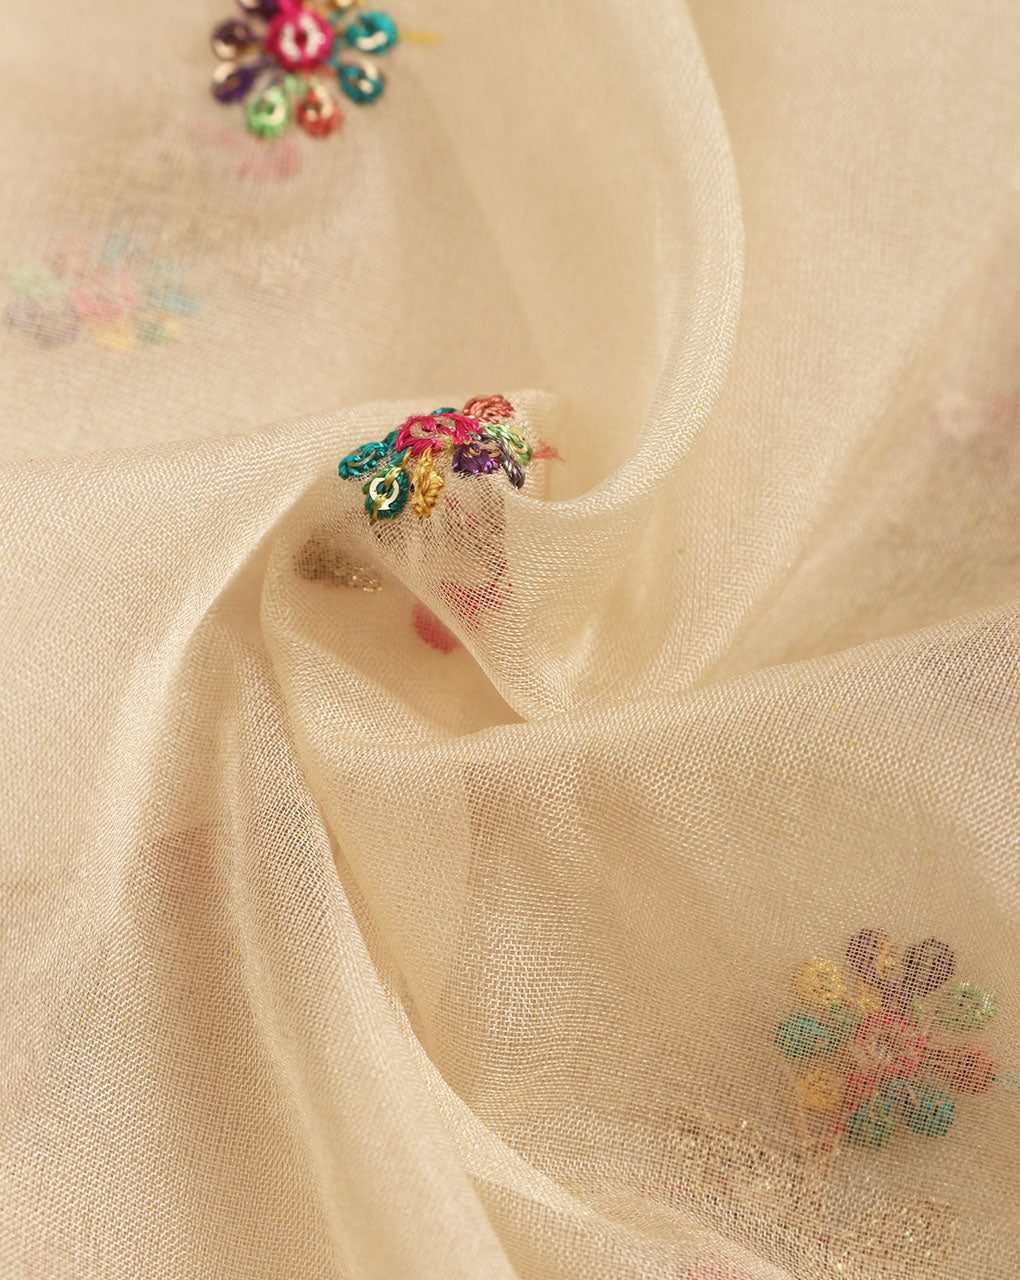 Beige Floral Organza Tissue Embroidery Fabric - Fabriclore.com